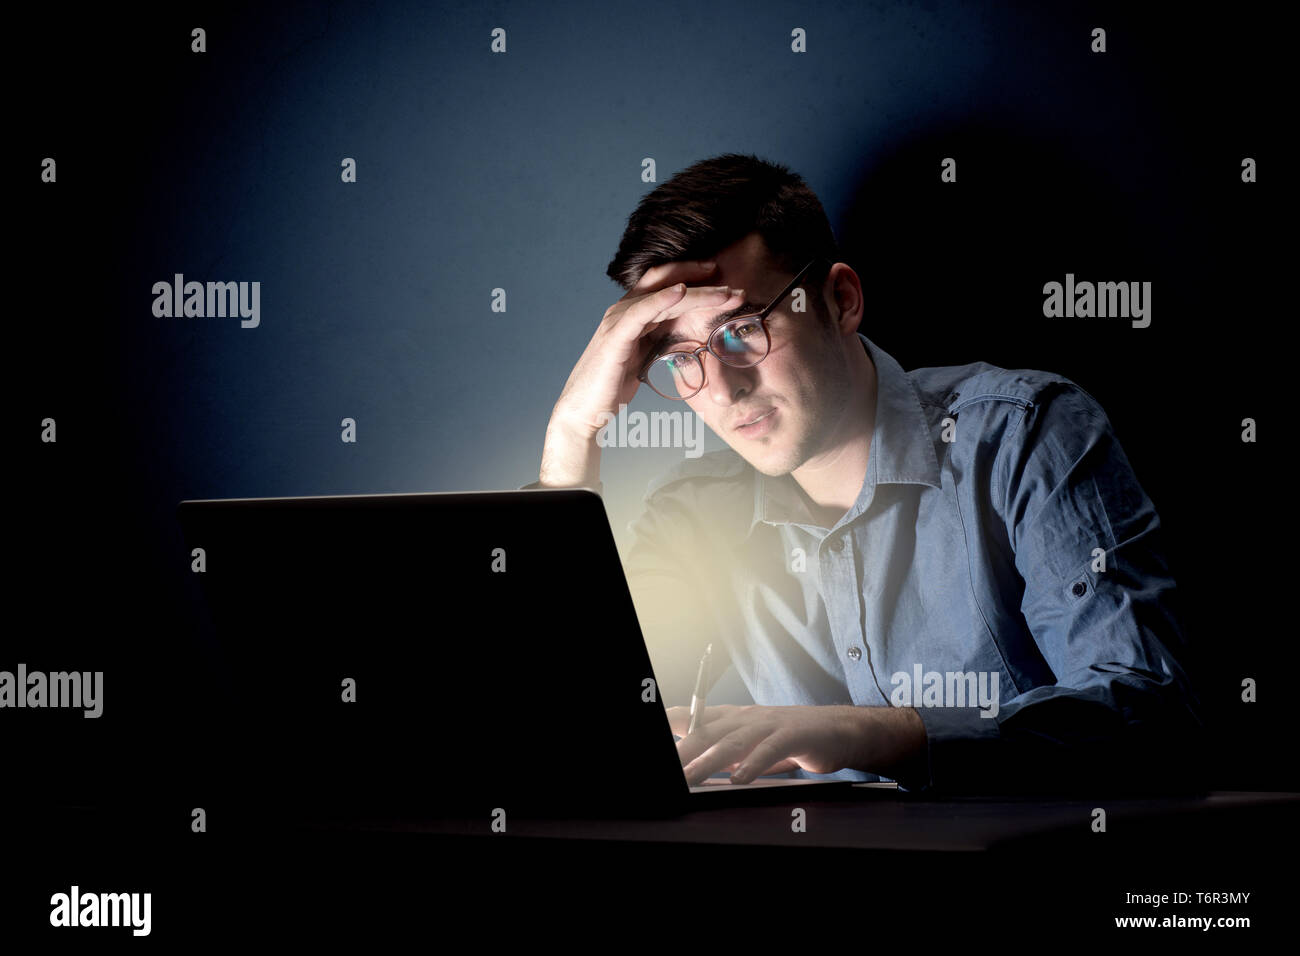 Young handsome businessman working late at night in the office with a dark background - Stock Image